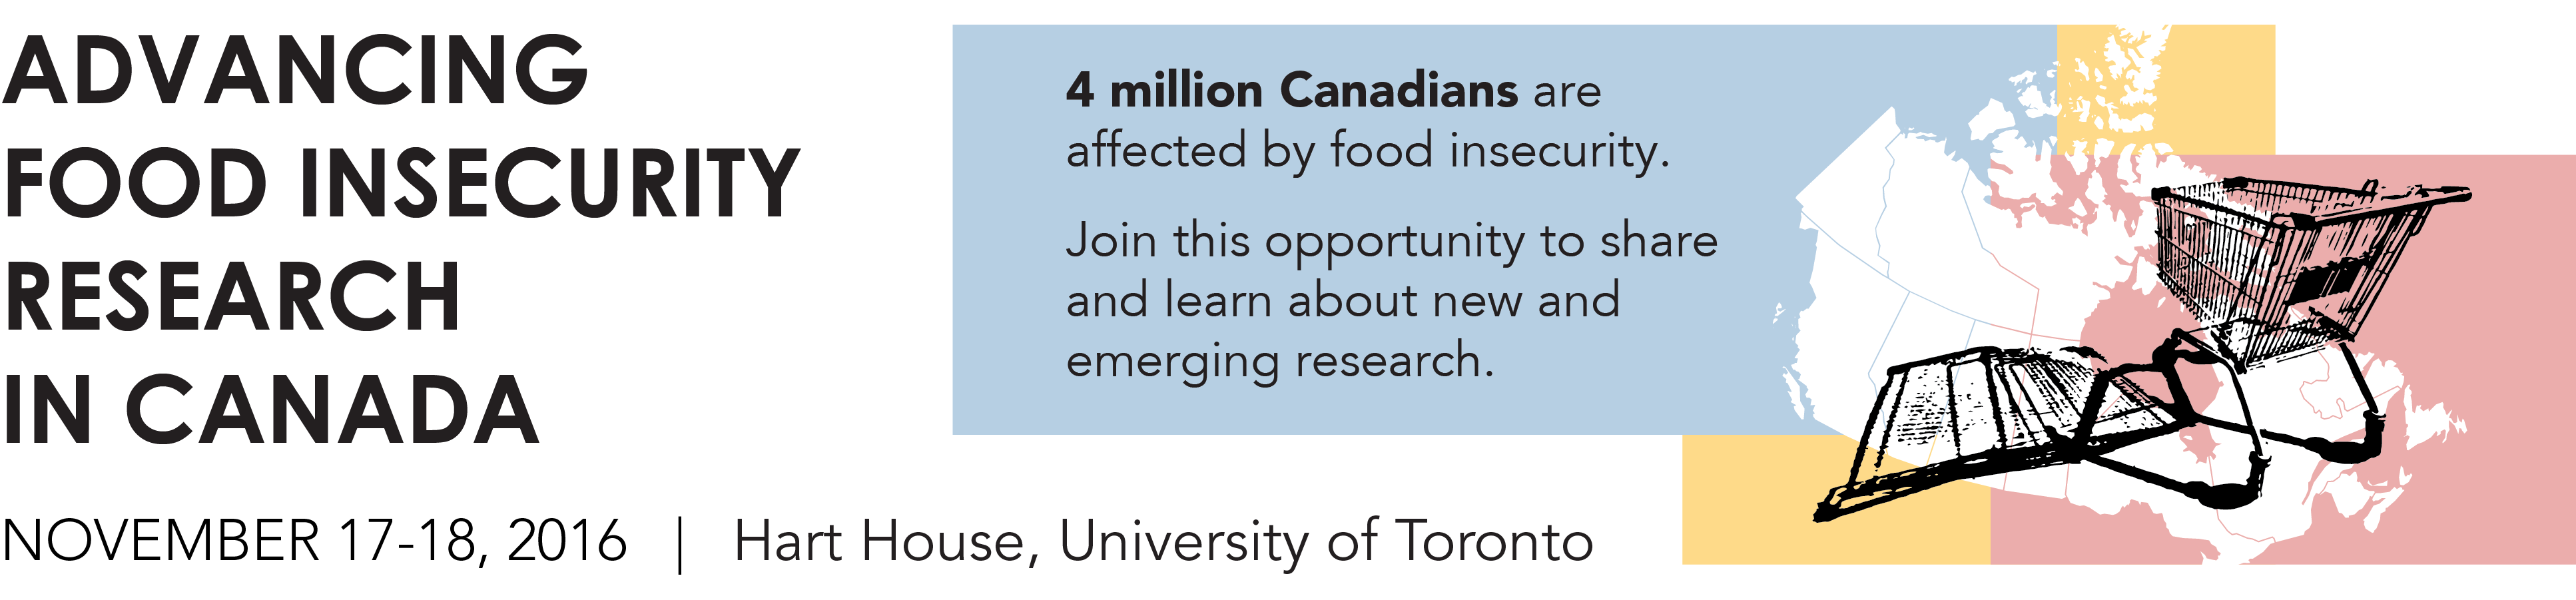 Advancing Food Insecurity Research in Canada conference - November 17-18, 2016. Call for Abstracts open until July 15